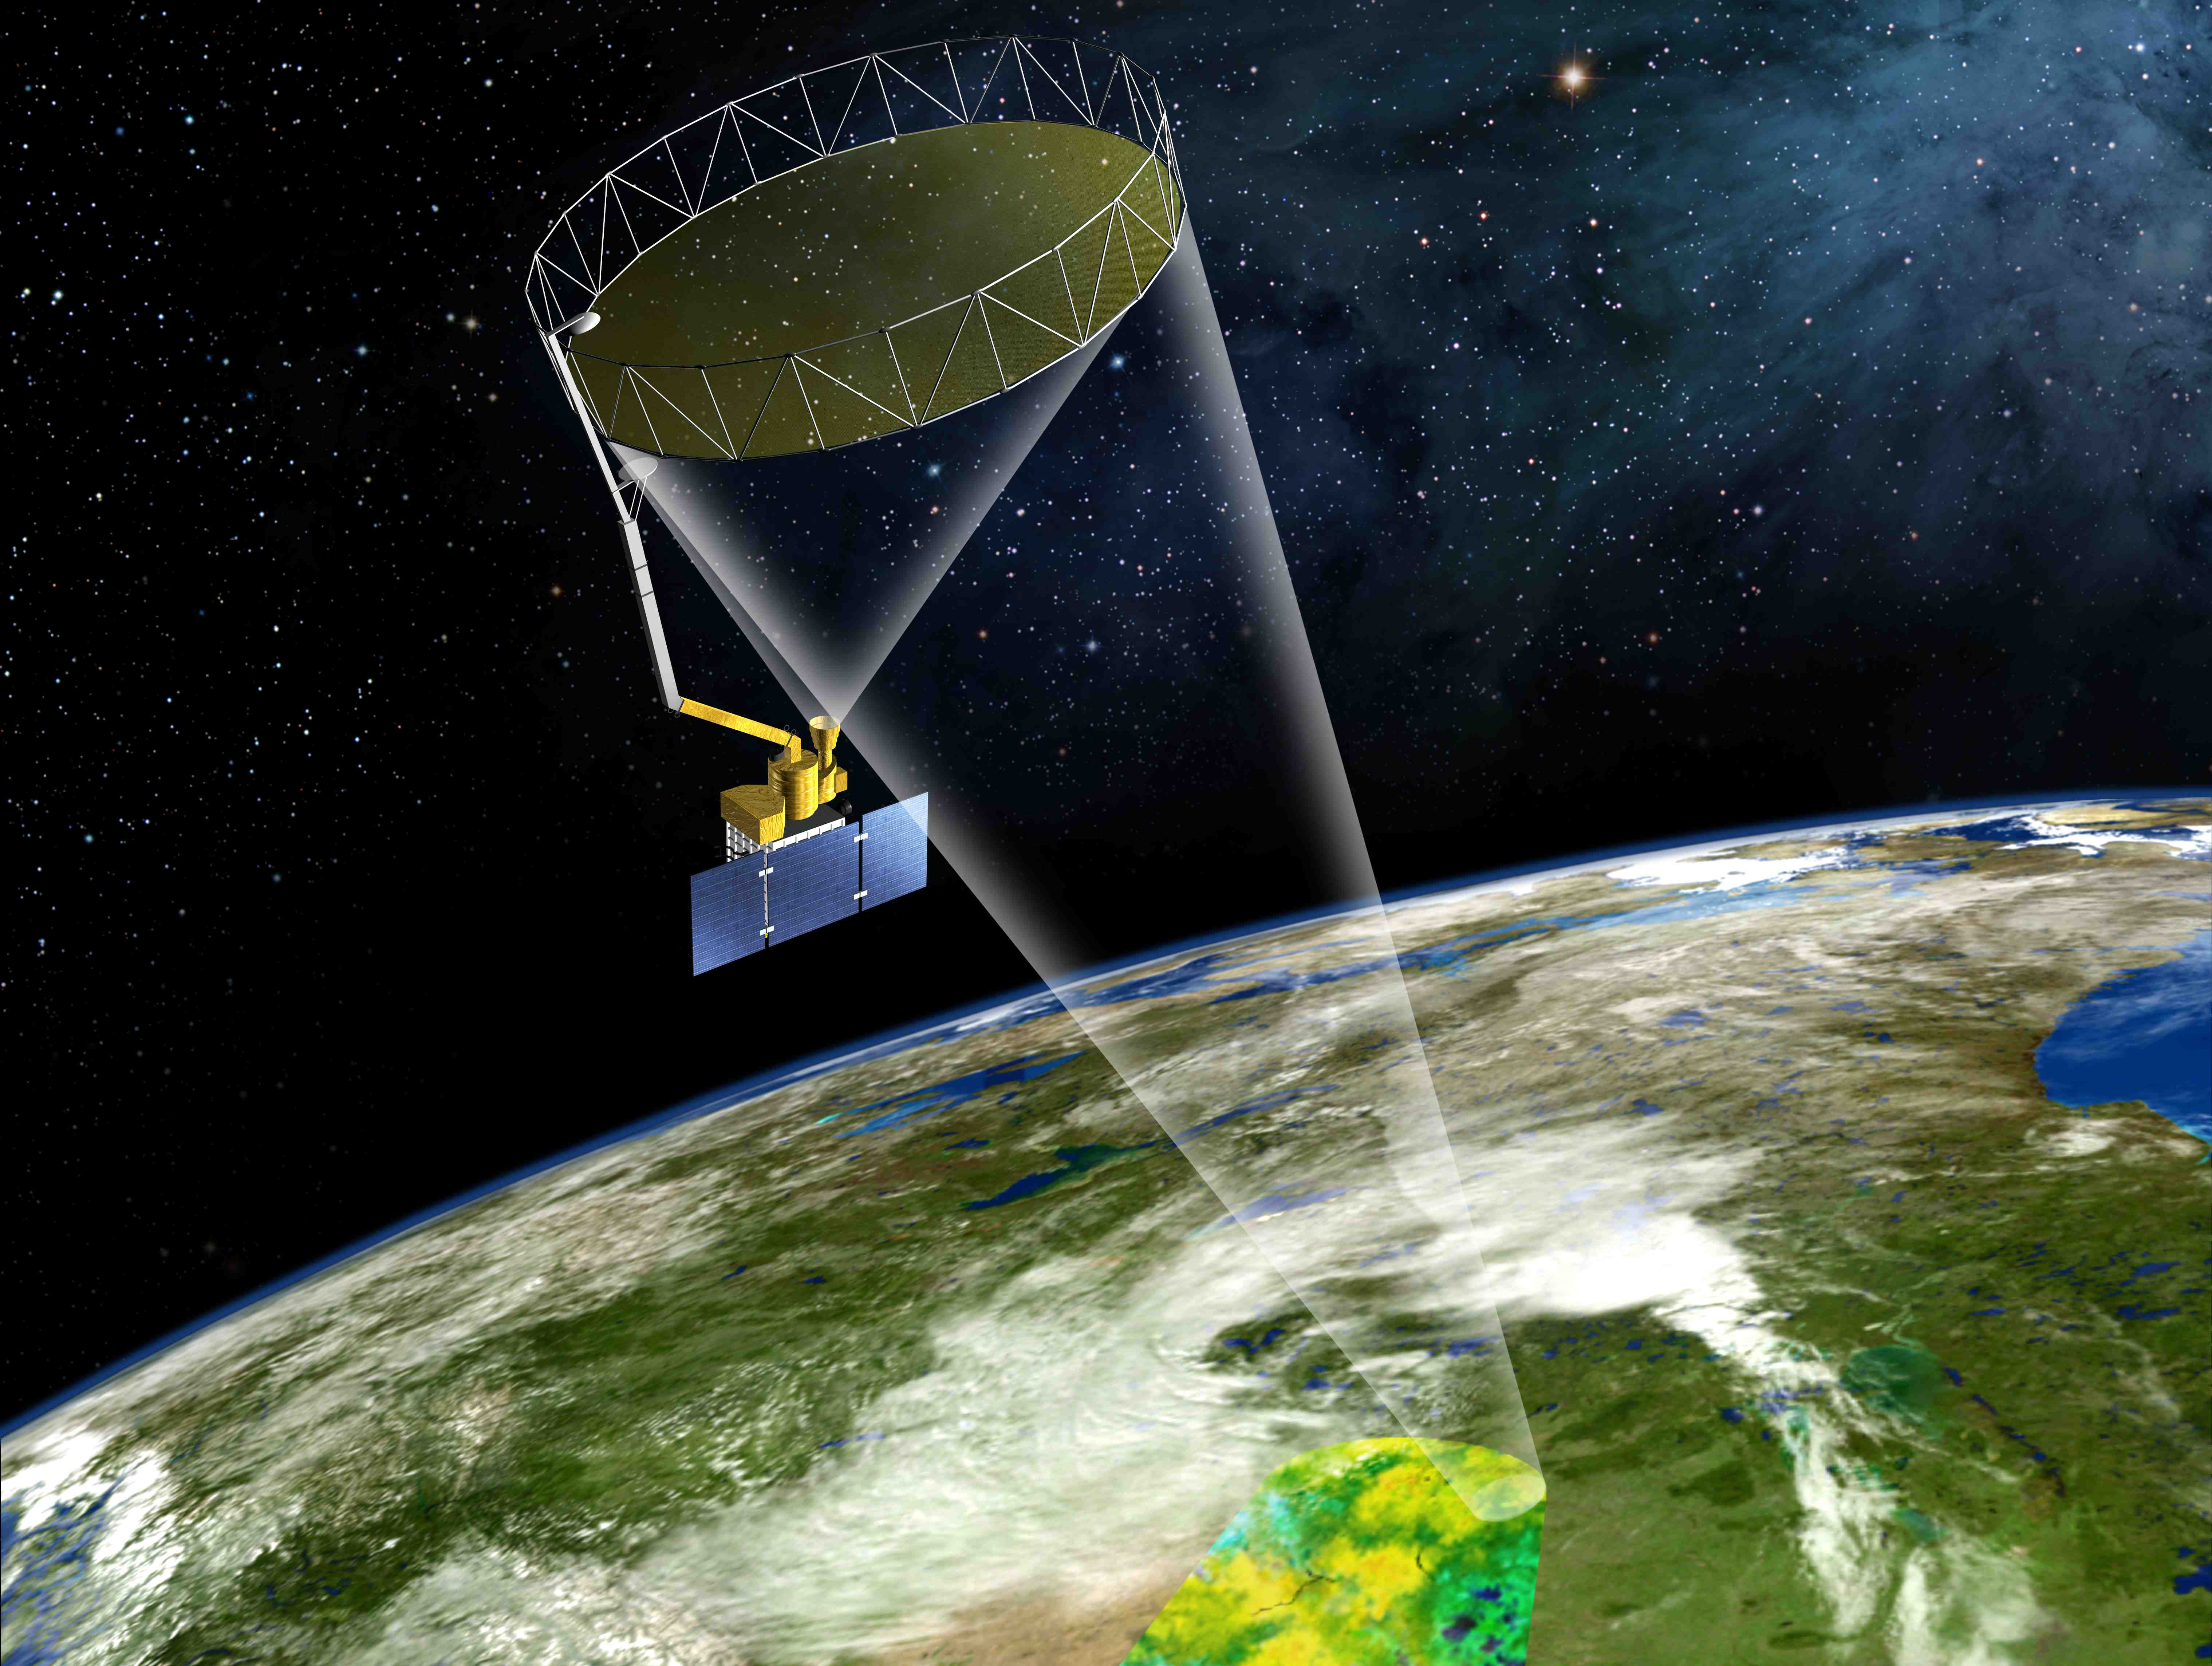 NASA's Soil Moisture Active Passive (SMAP) mission will produce high-resolution global maps of soil moisture to track water availability around our planet and guide policy decisions.